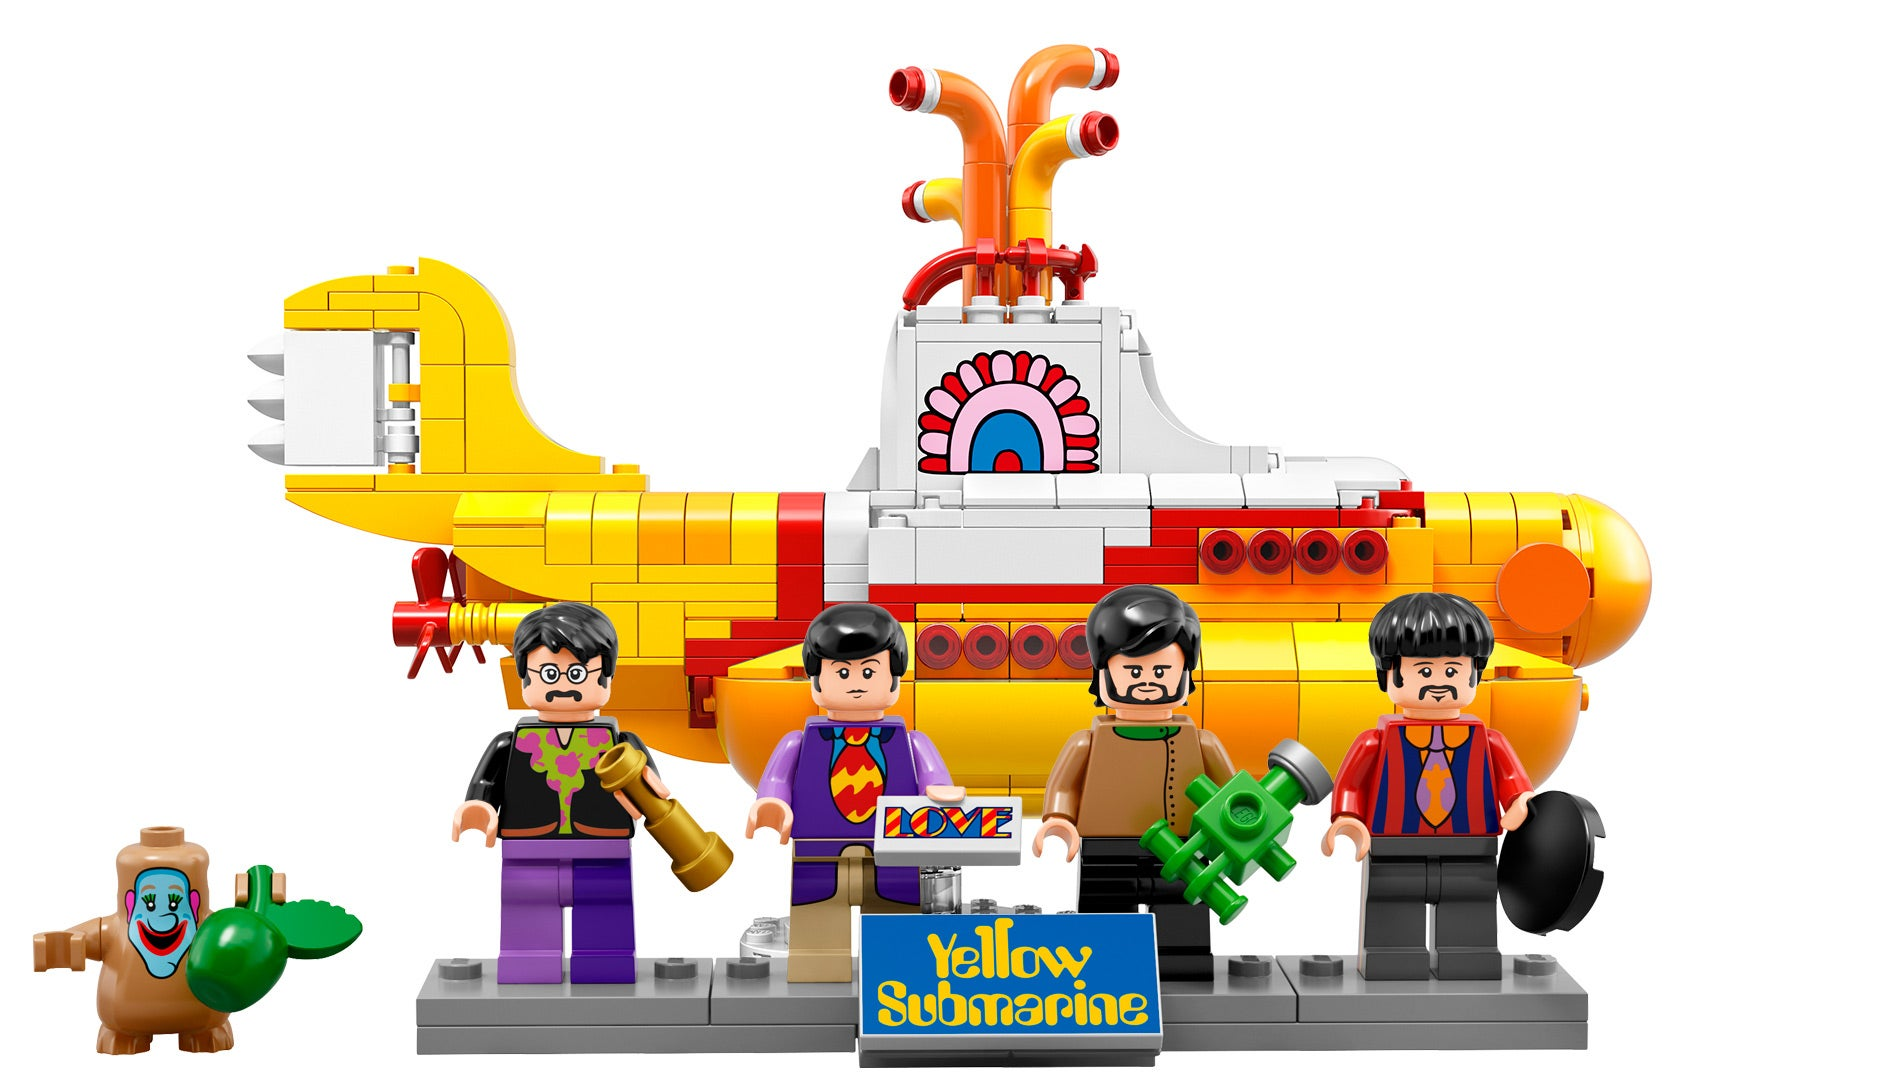 We All Live In An Official LEGO Yellow Submarine